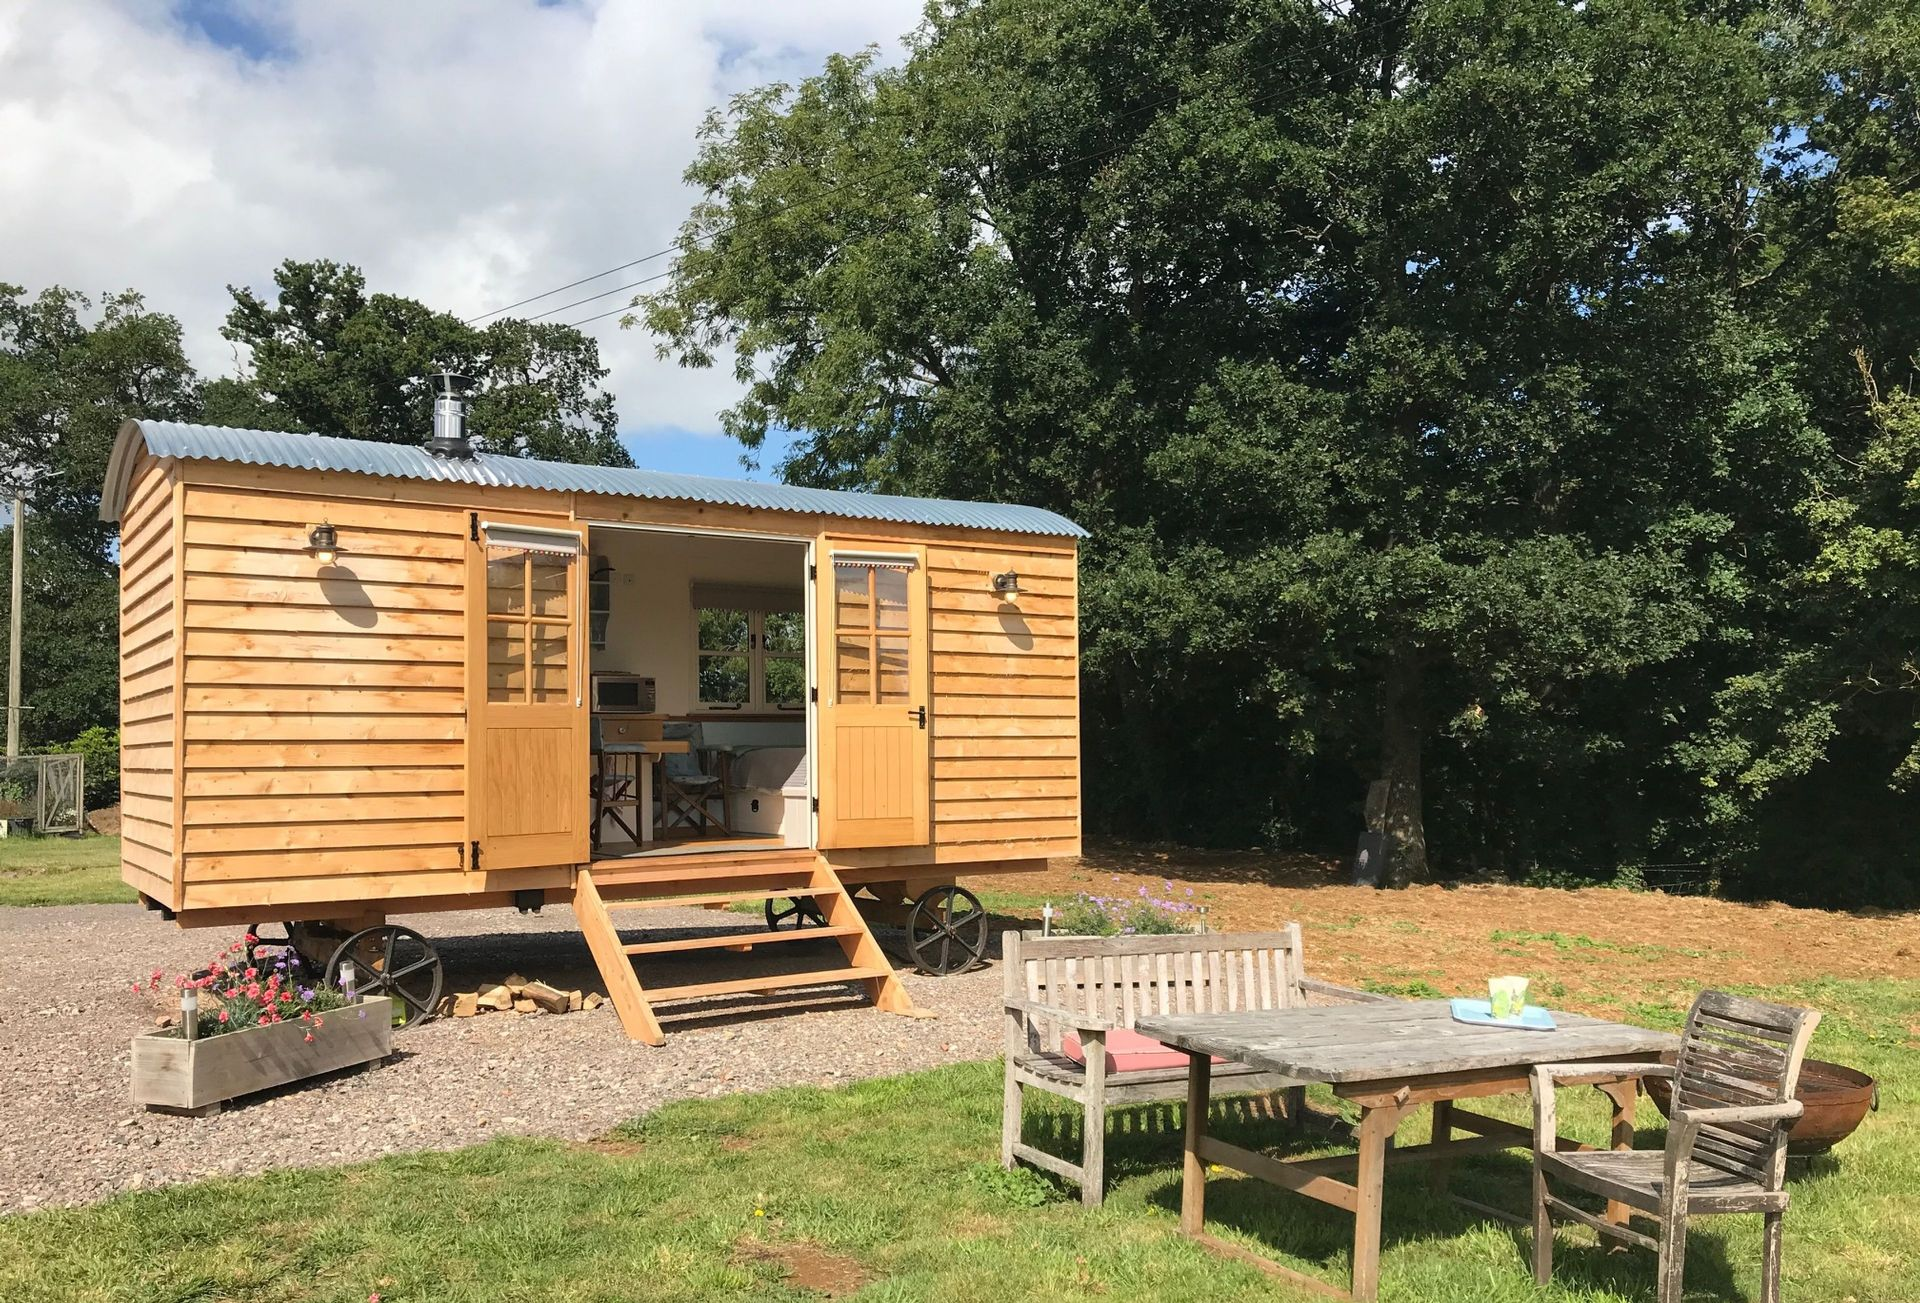 More information about Blossom the shepherd's hut - ideal for a family holiday